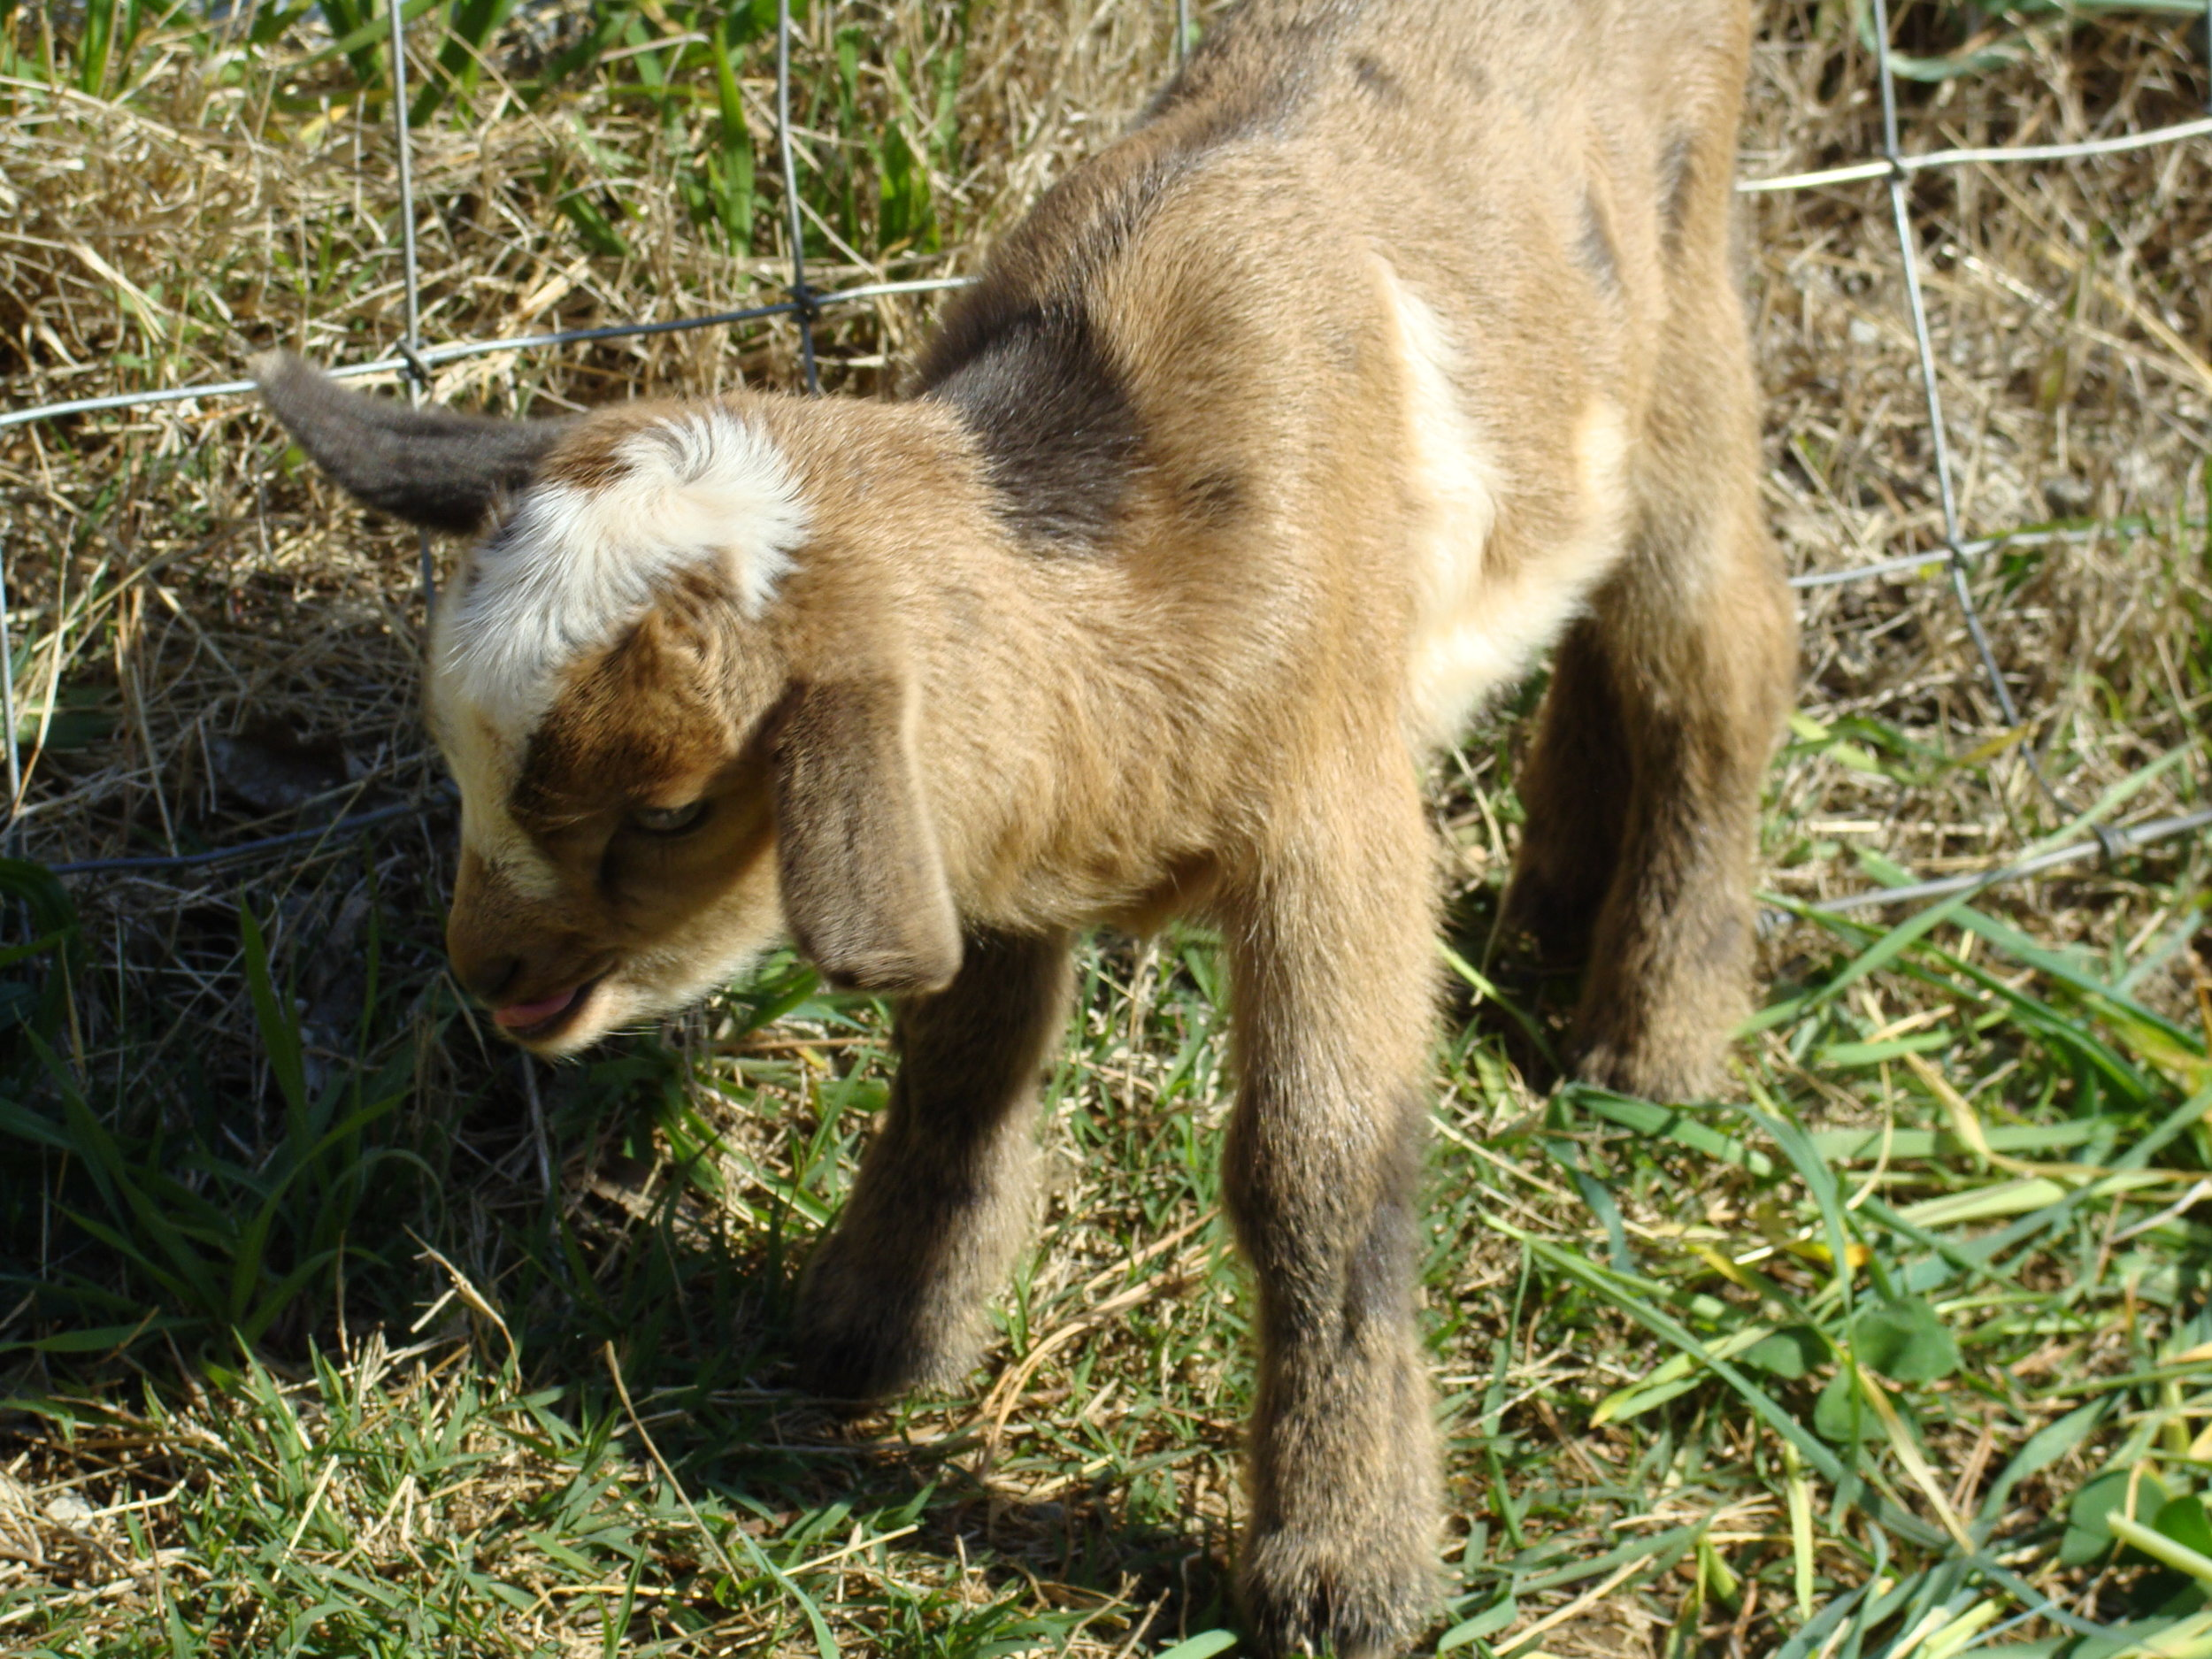 dueling-baby goat